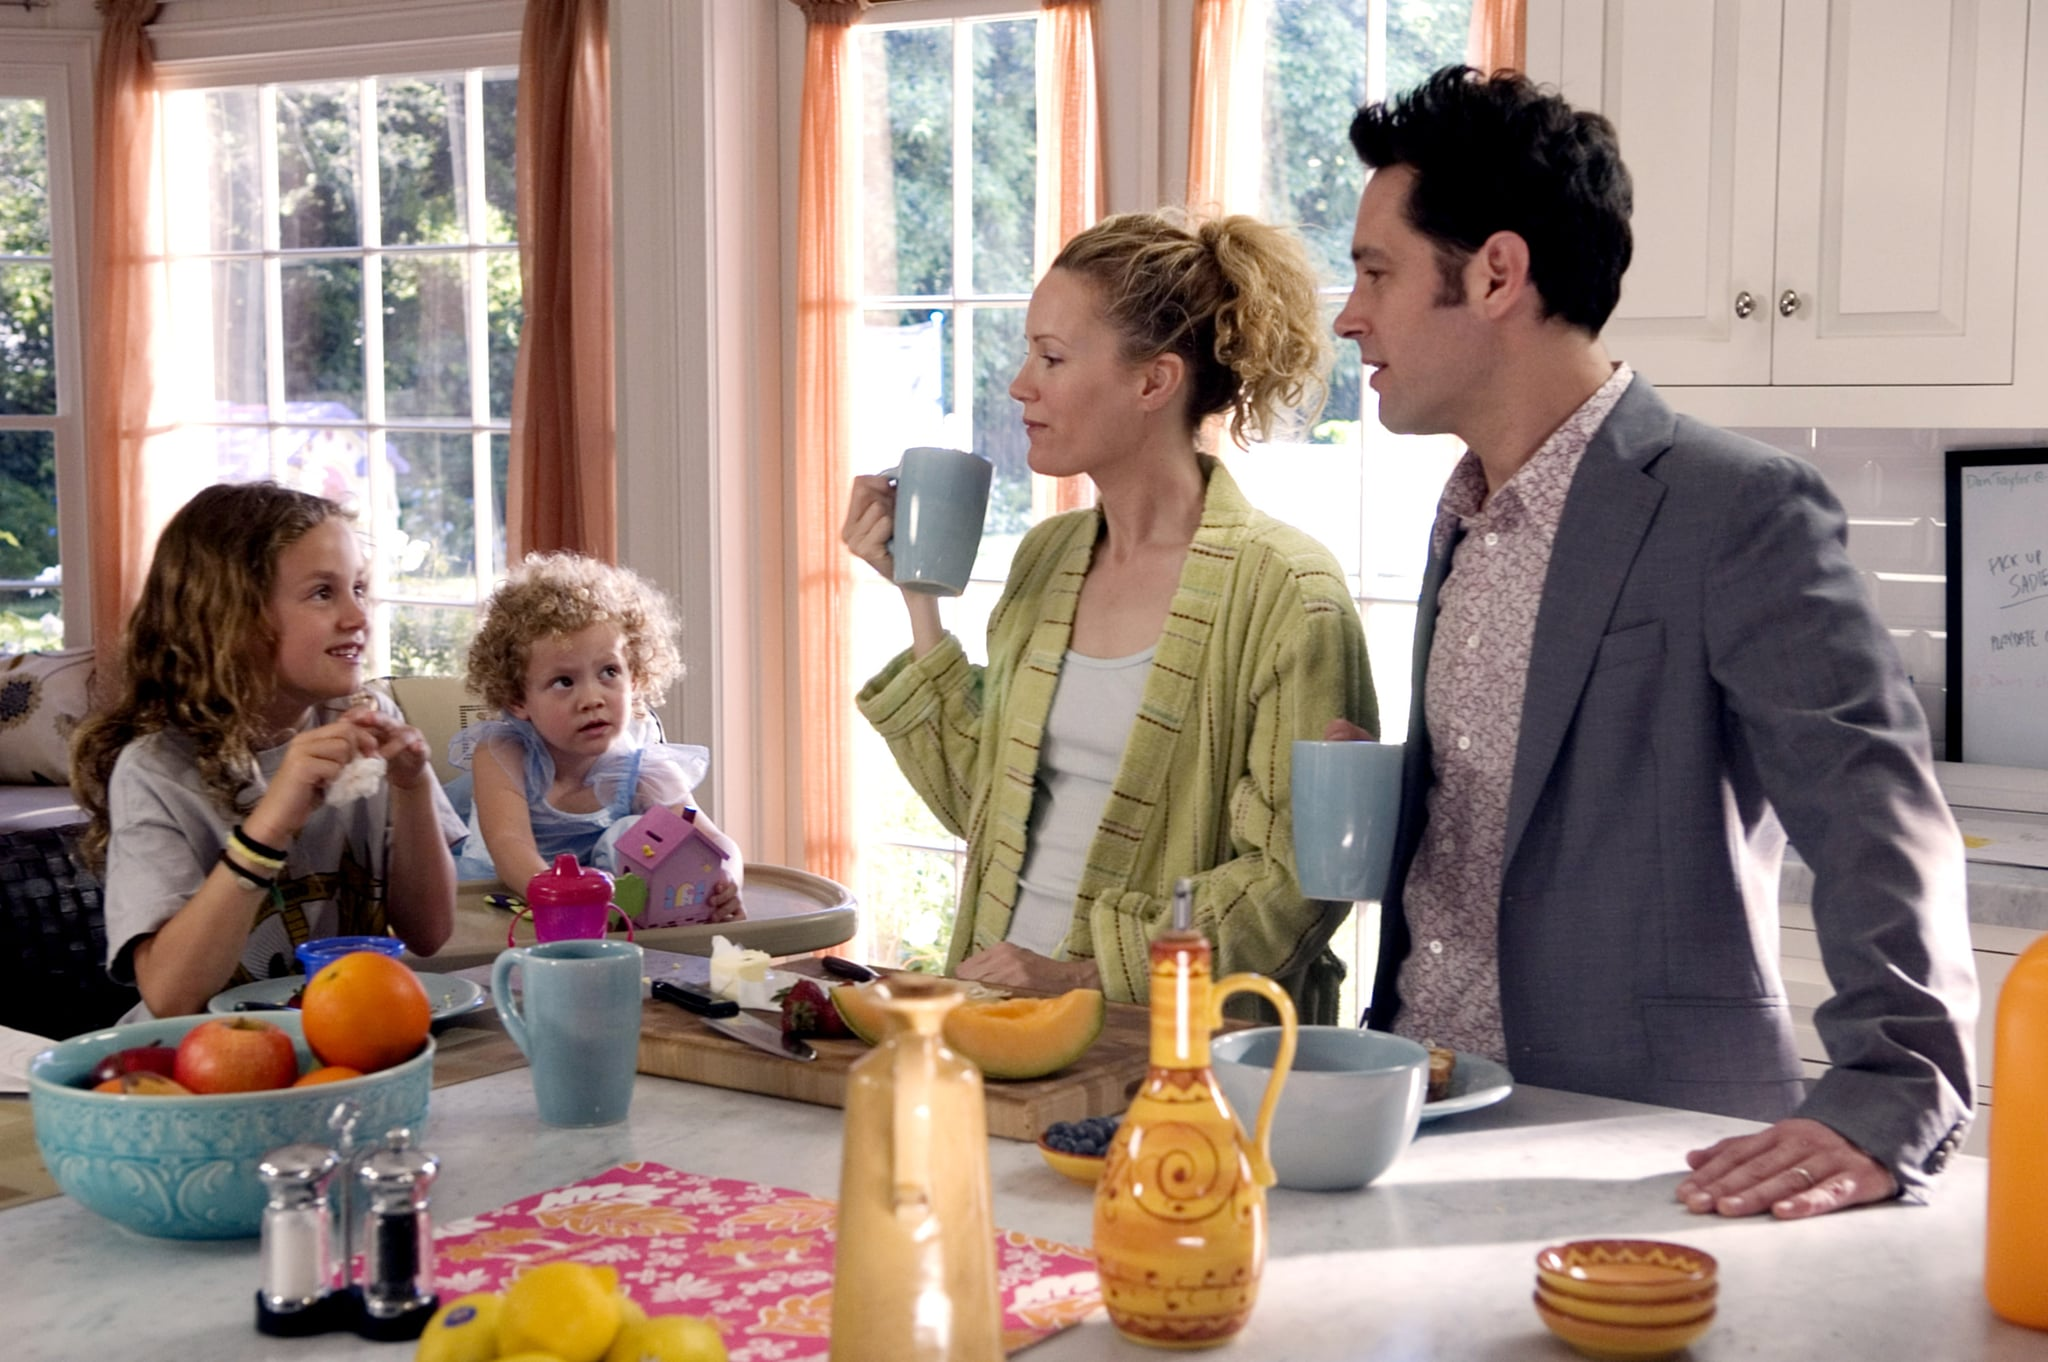 KNOCKED UP, Maude Apatow, Iris Apatow, Leslie Mann, Paul Rudd, 2007. Universal Pictures/Courtesy Everett Collection